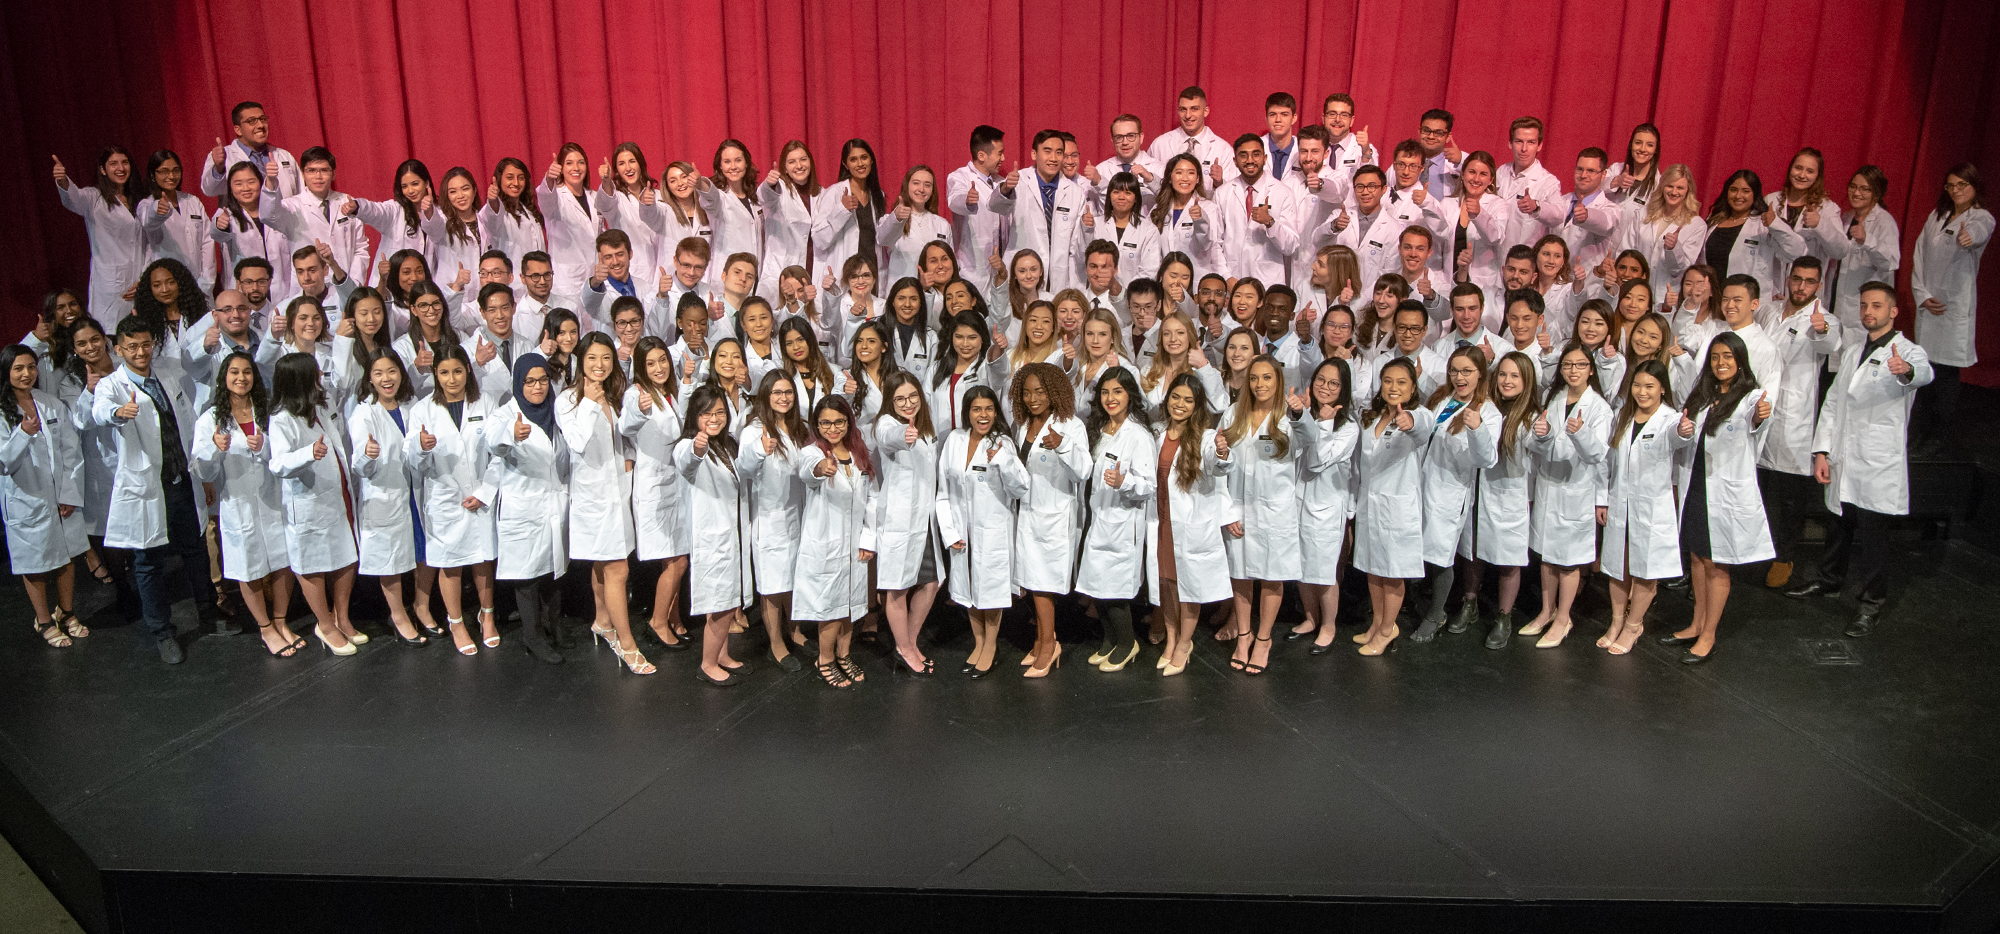 Class of 2022 in their white coats giving thumbs up